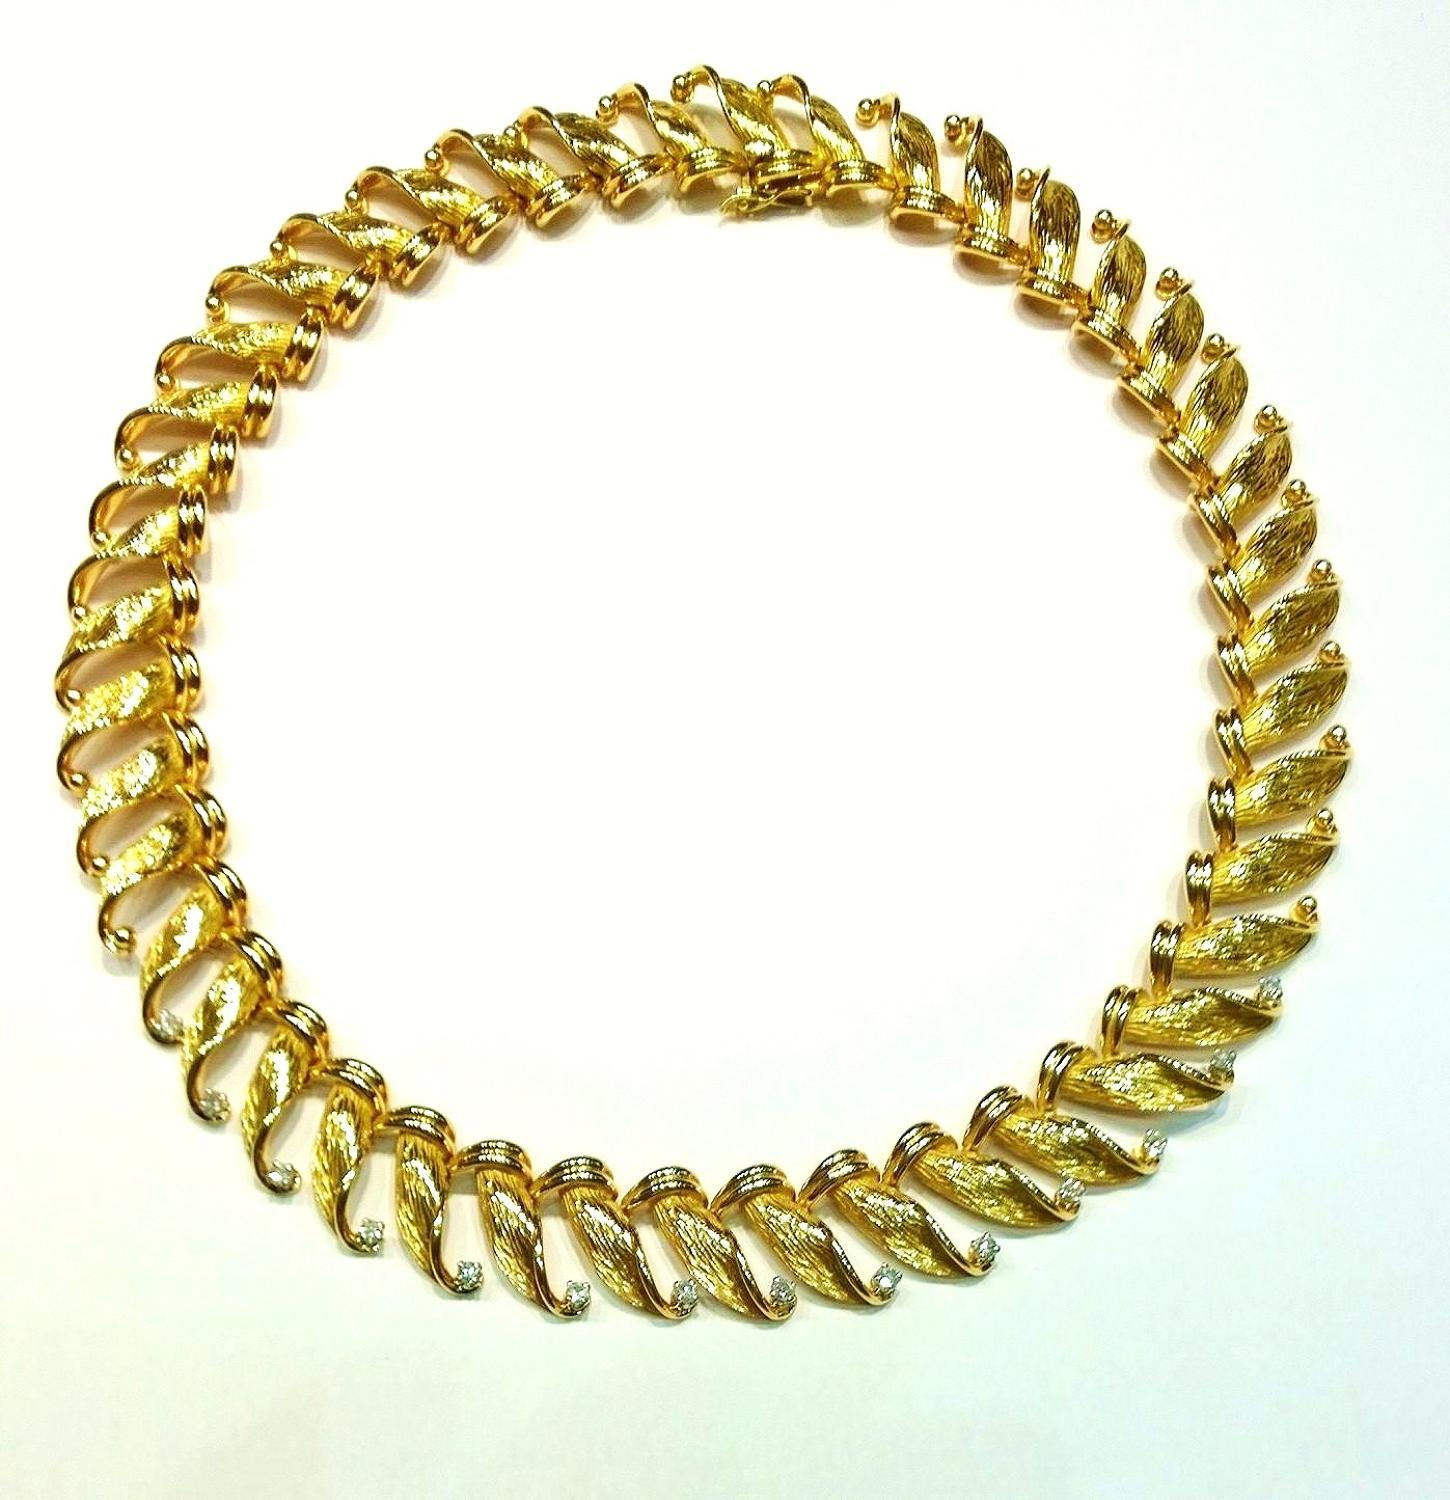 18ct gold and diamond collar